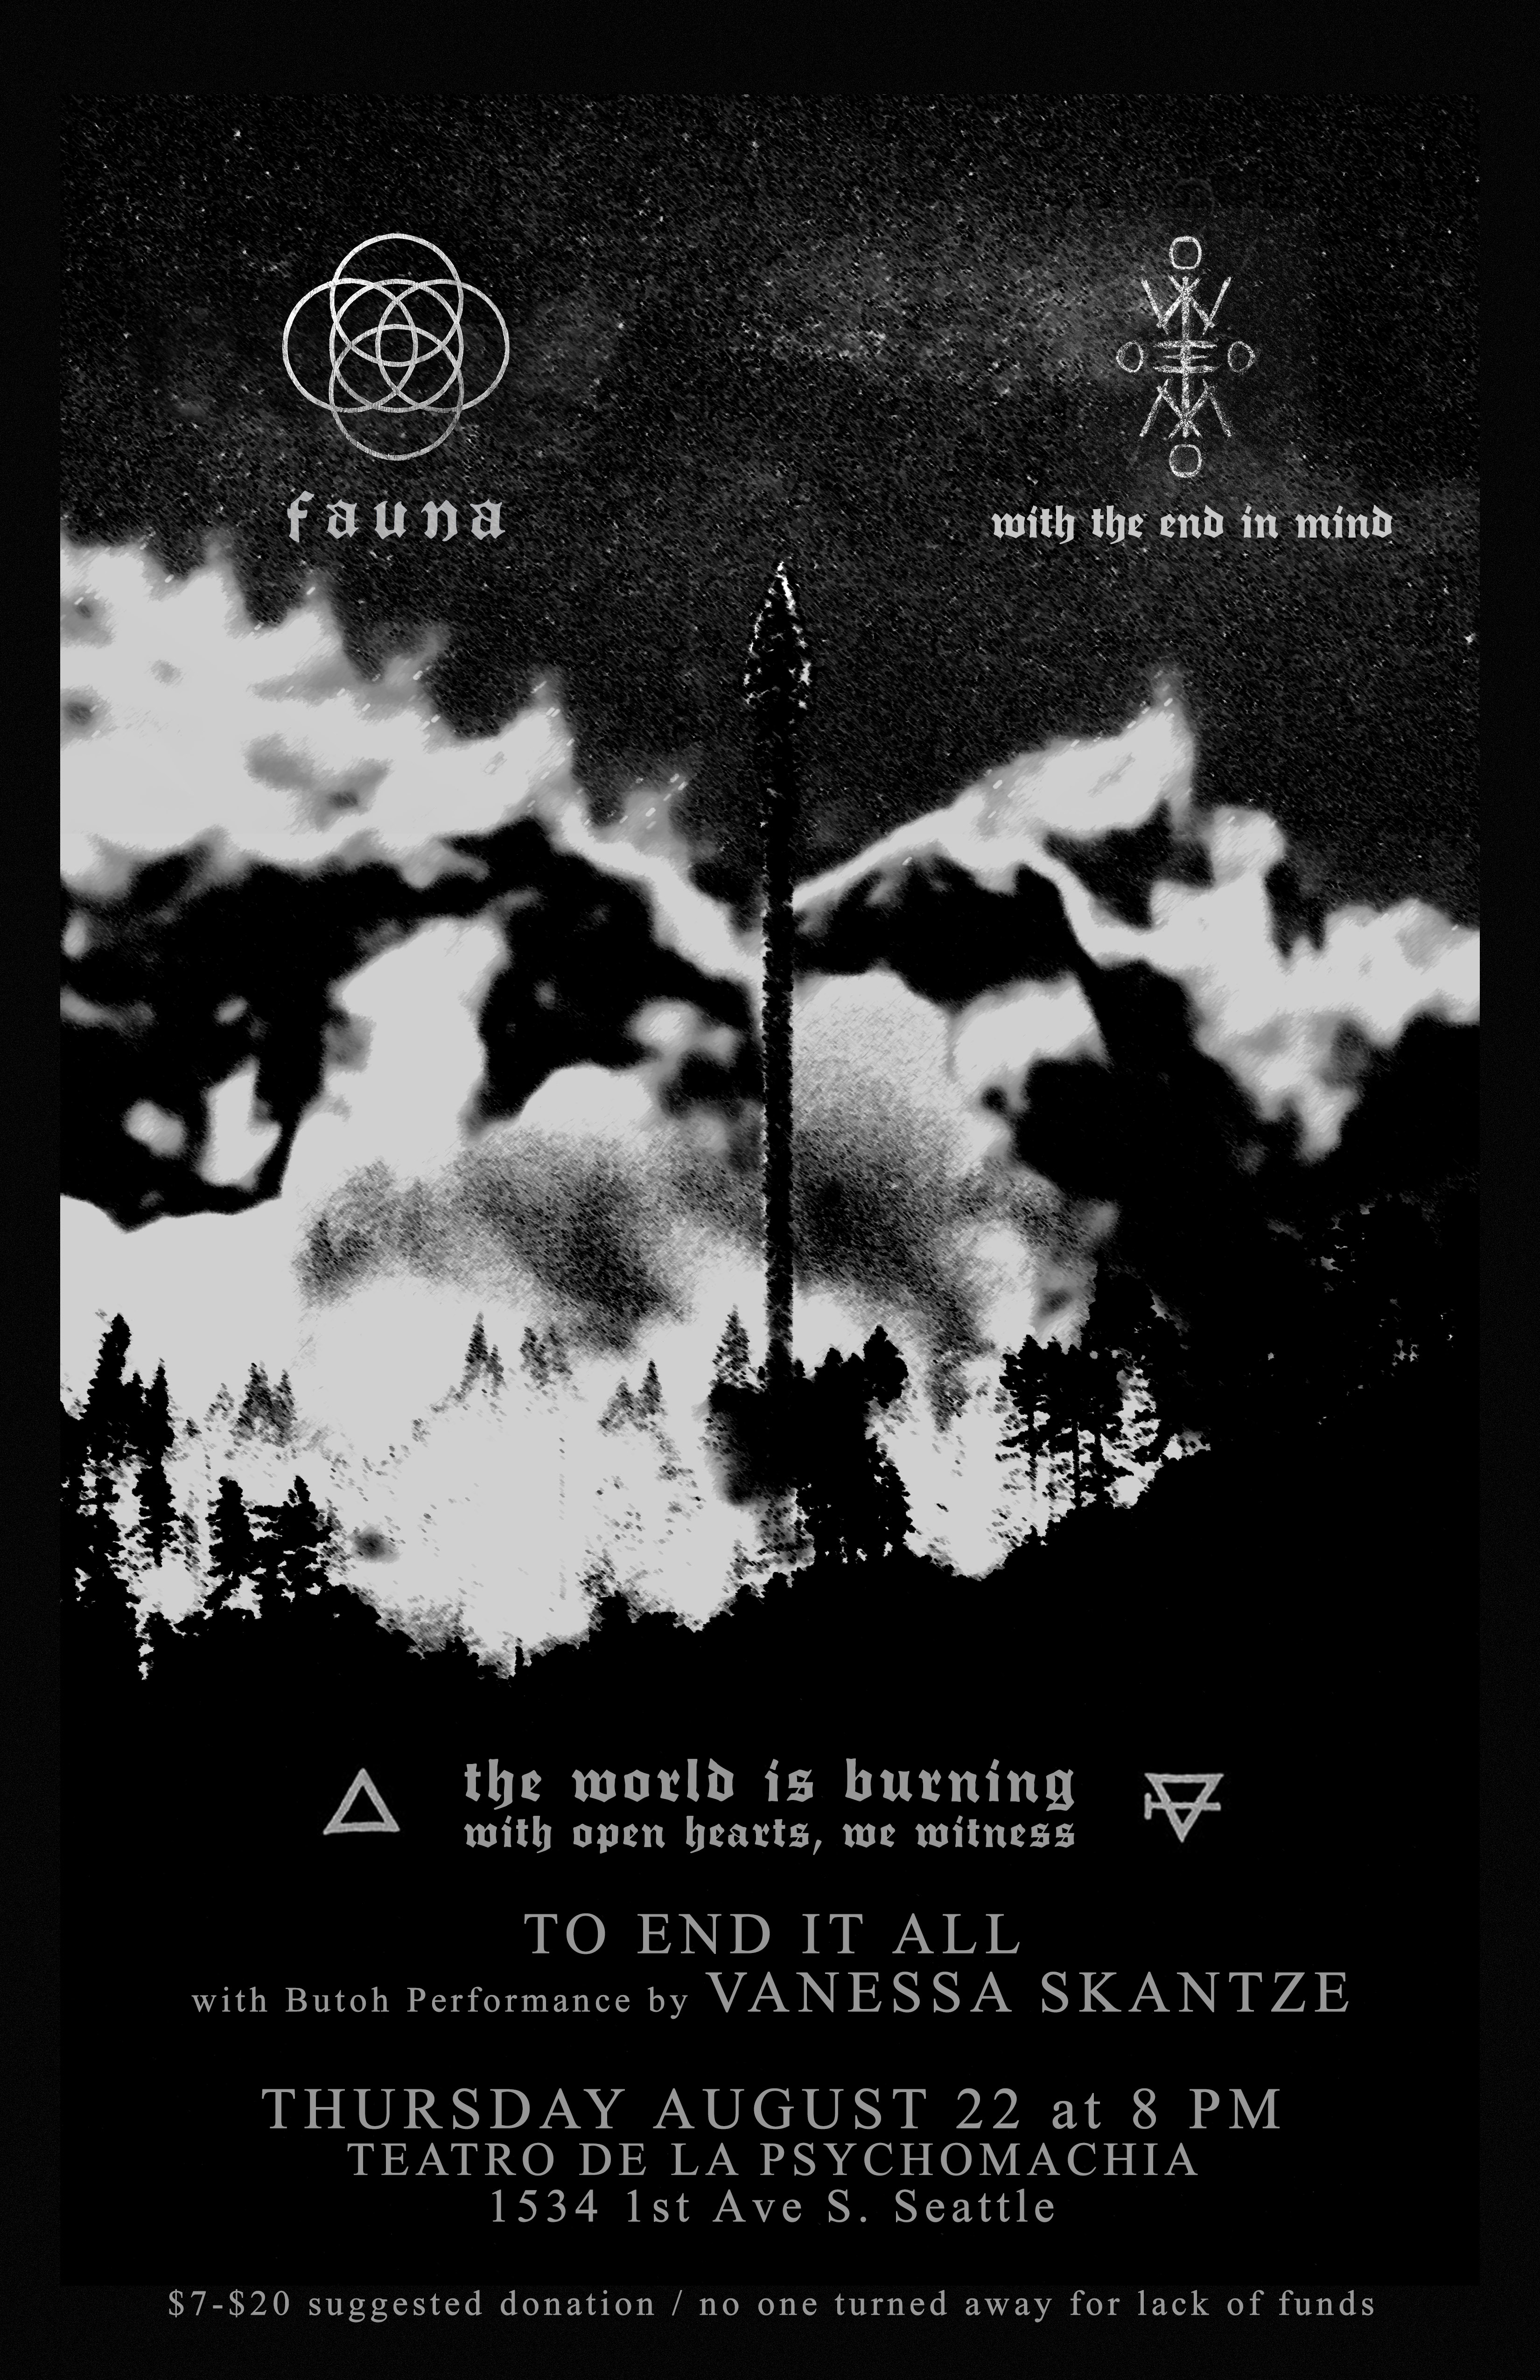 fauna, with the end in mind, to end it all & vanessa skantze at teatro de la psychomachia 8-22-19